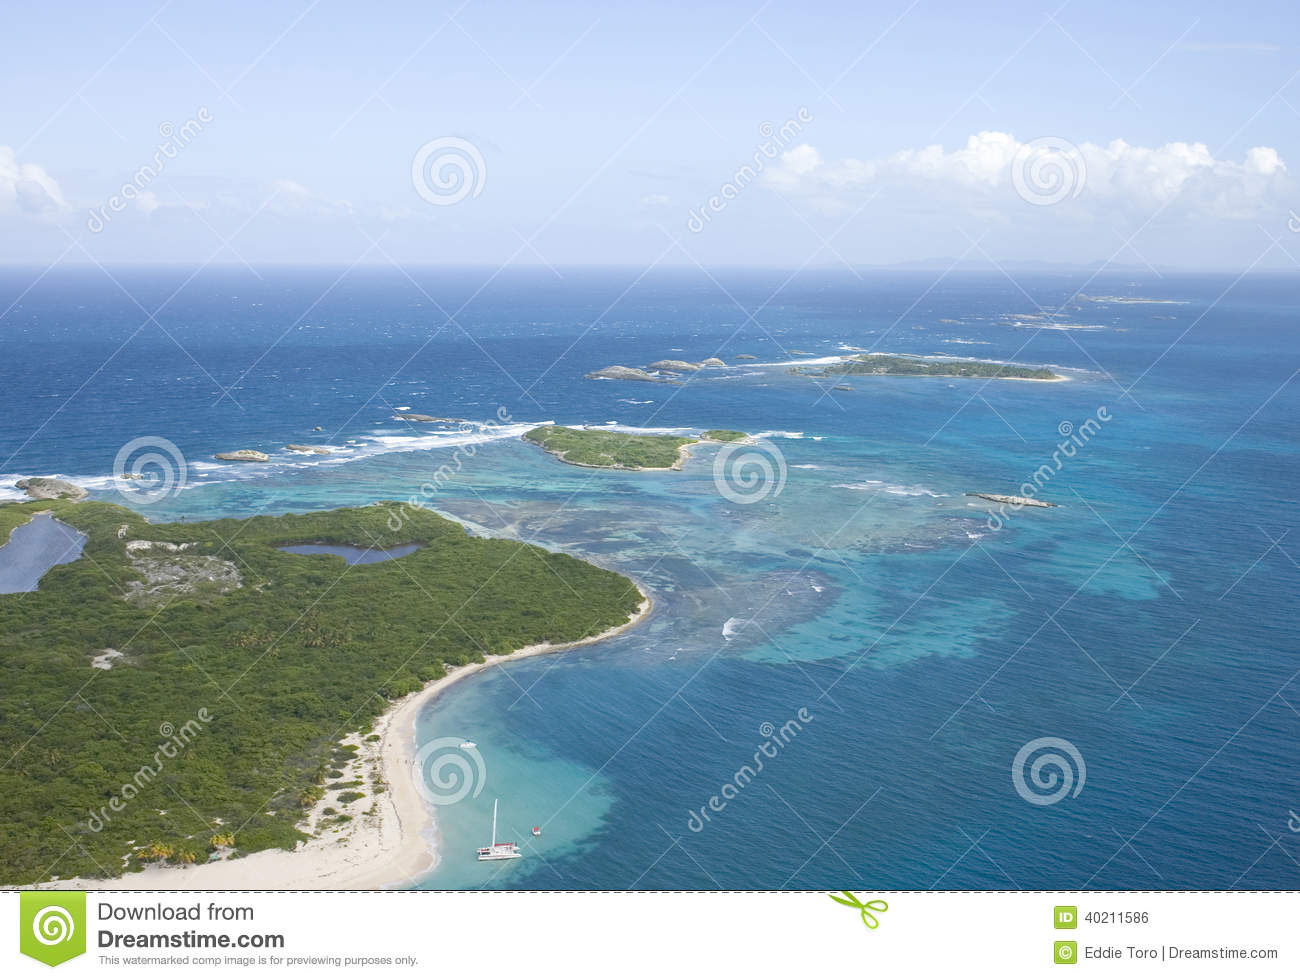 the island of puerto rico The geography of puerto rico consists of an archipelago located between the caribbean sea and the north atlantic ocean, east of the dominican republic and west of the virgin islands.